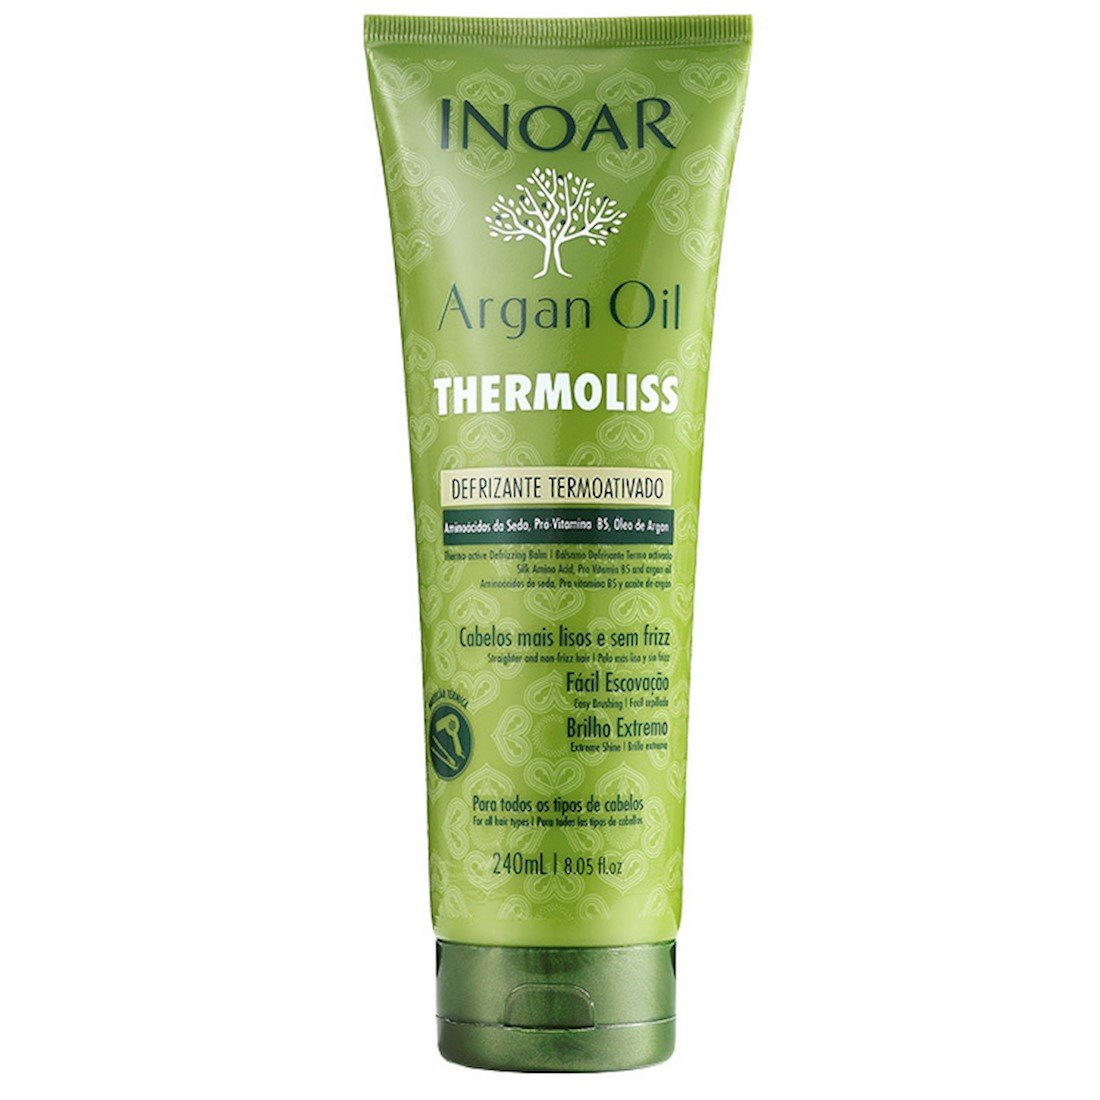 INOAR Argan Oil Thermoliss - Defrizante Termoativado (240 ml)